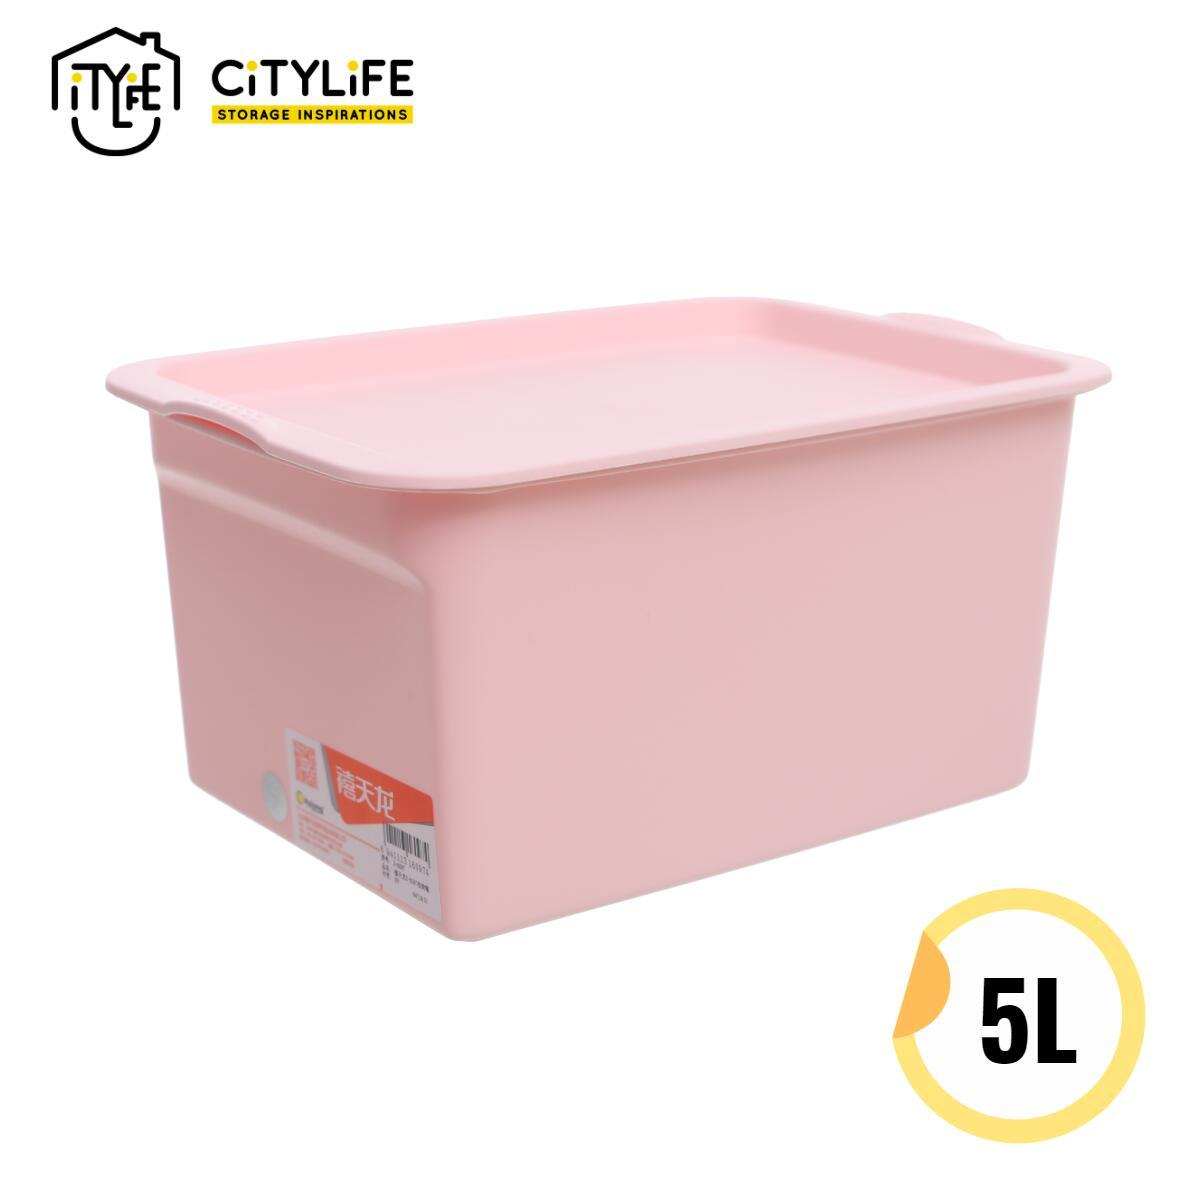 [Bundle of 3] - Citylife 5L Storage Box with Lid